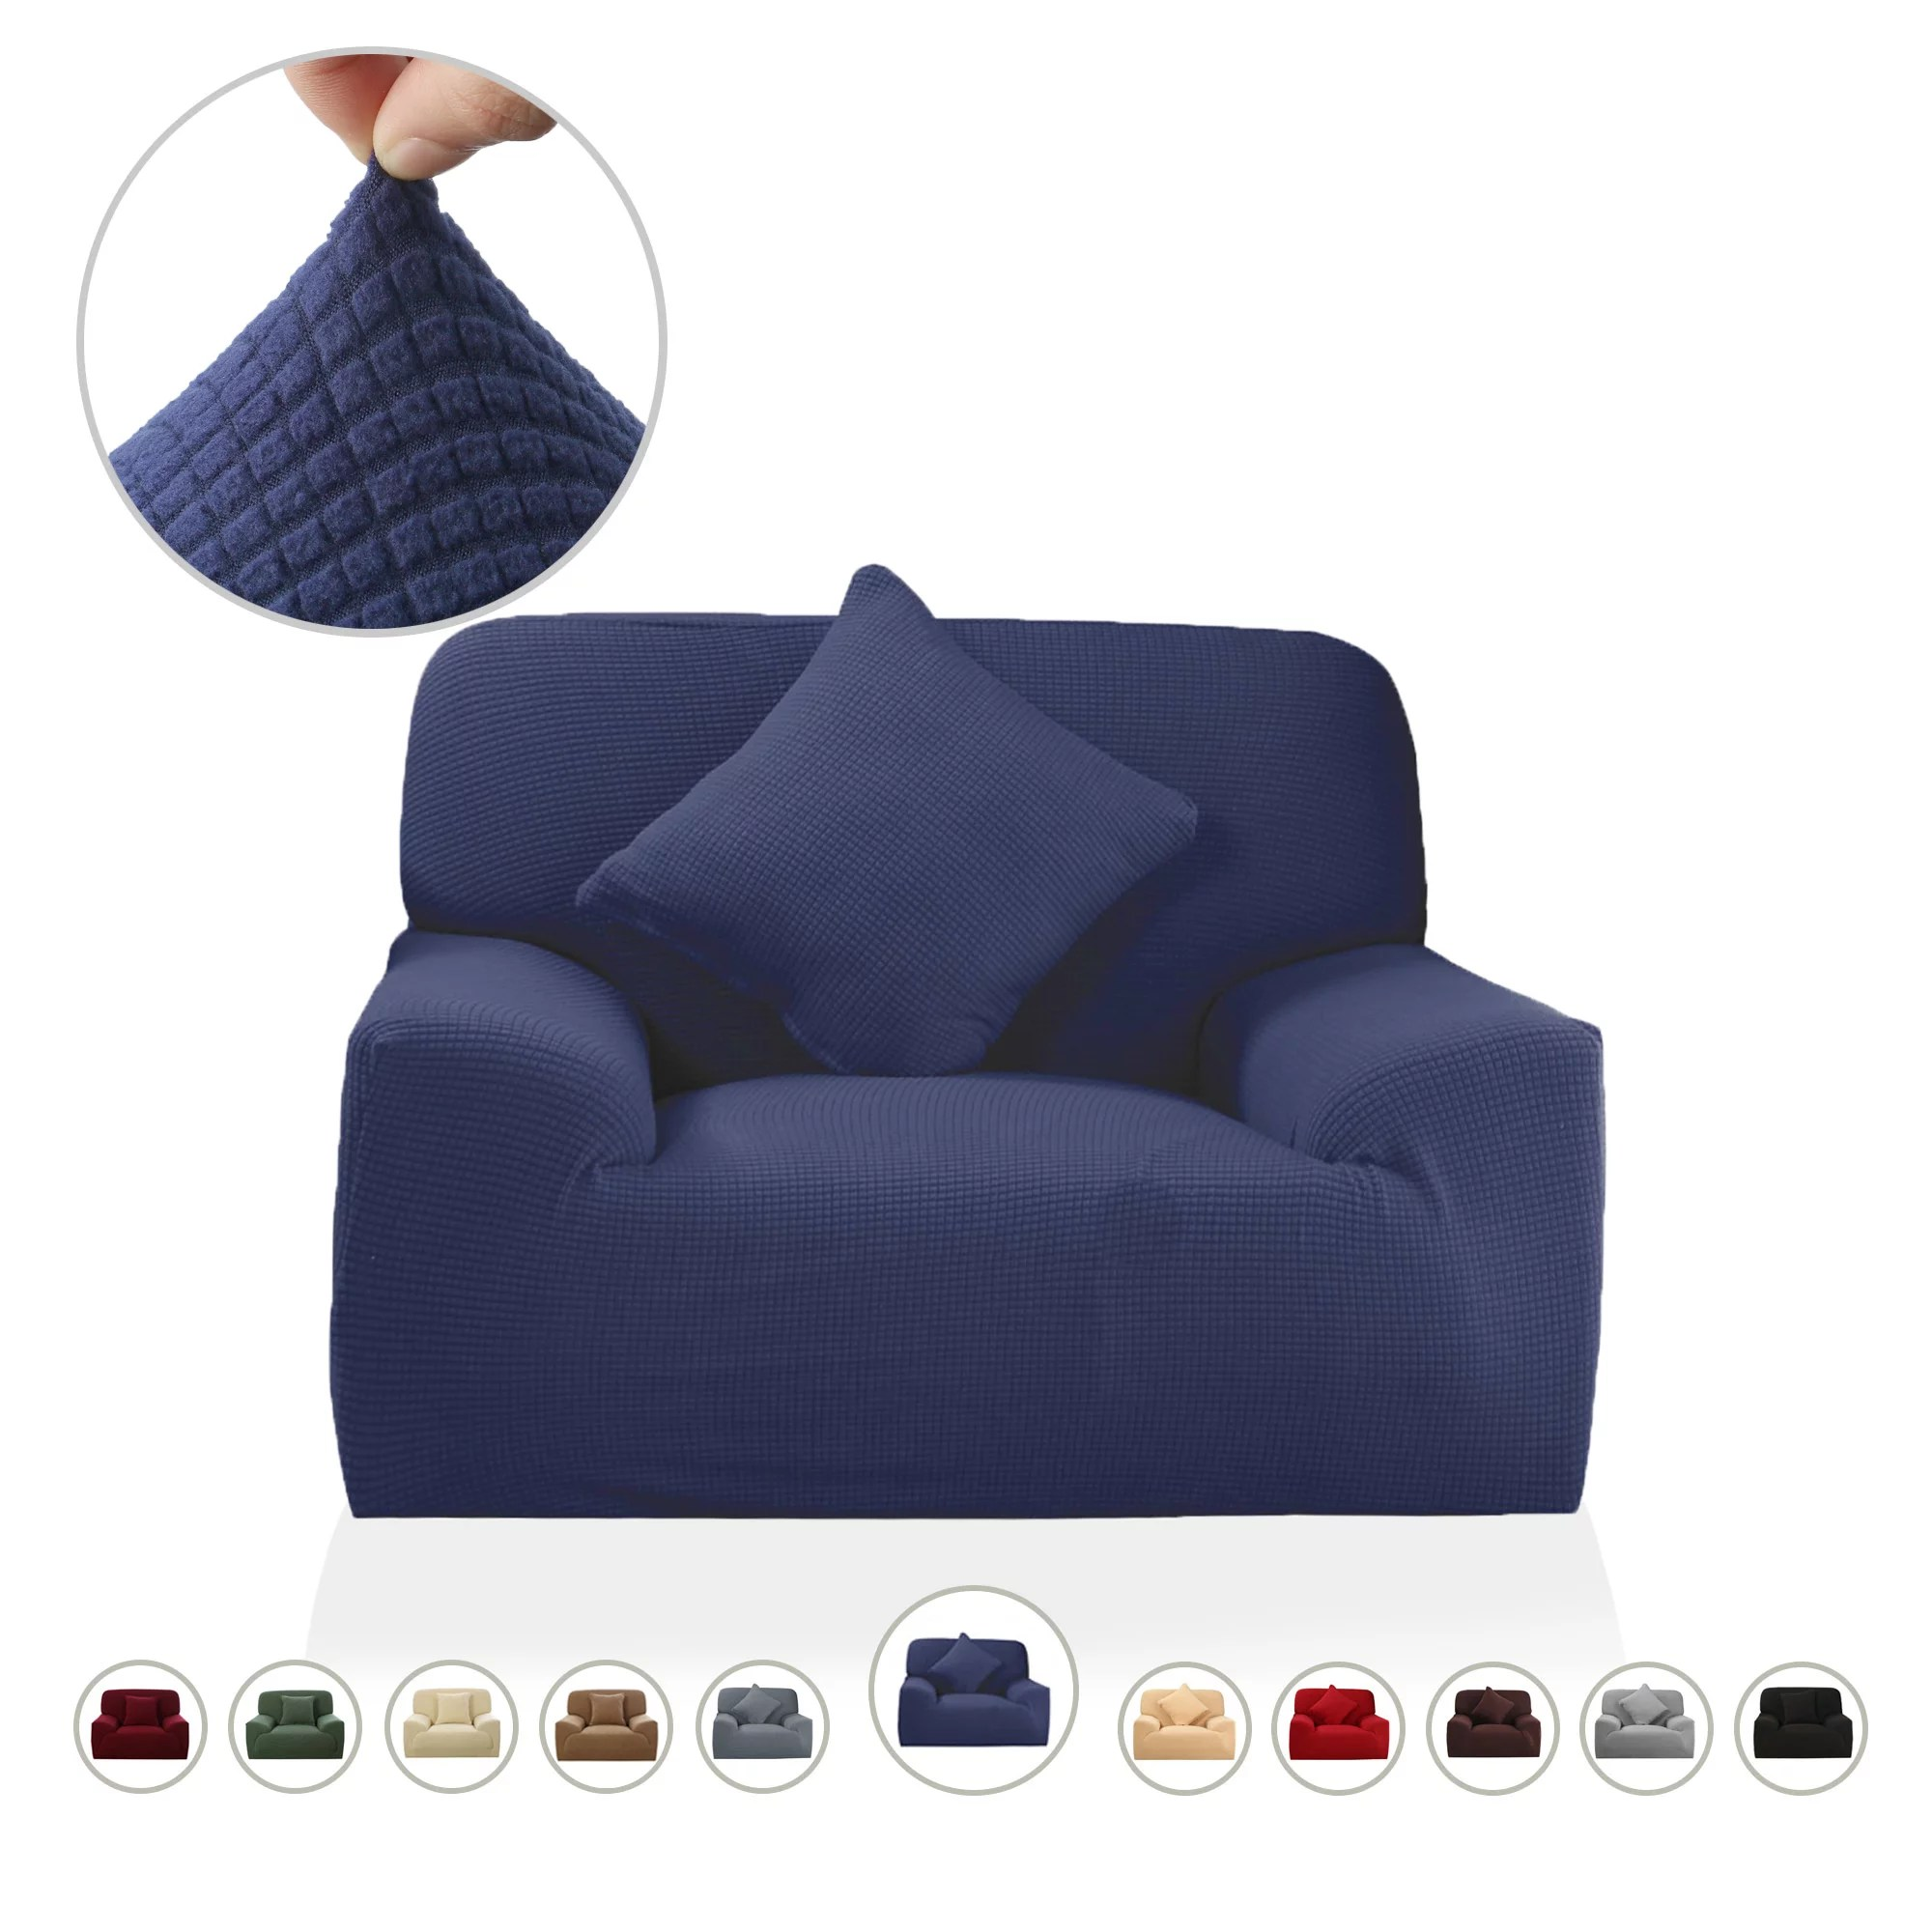 piccocasa jacquard polyester spandex strech slipcover for 1 seater chair navy blue